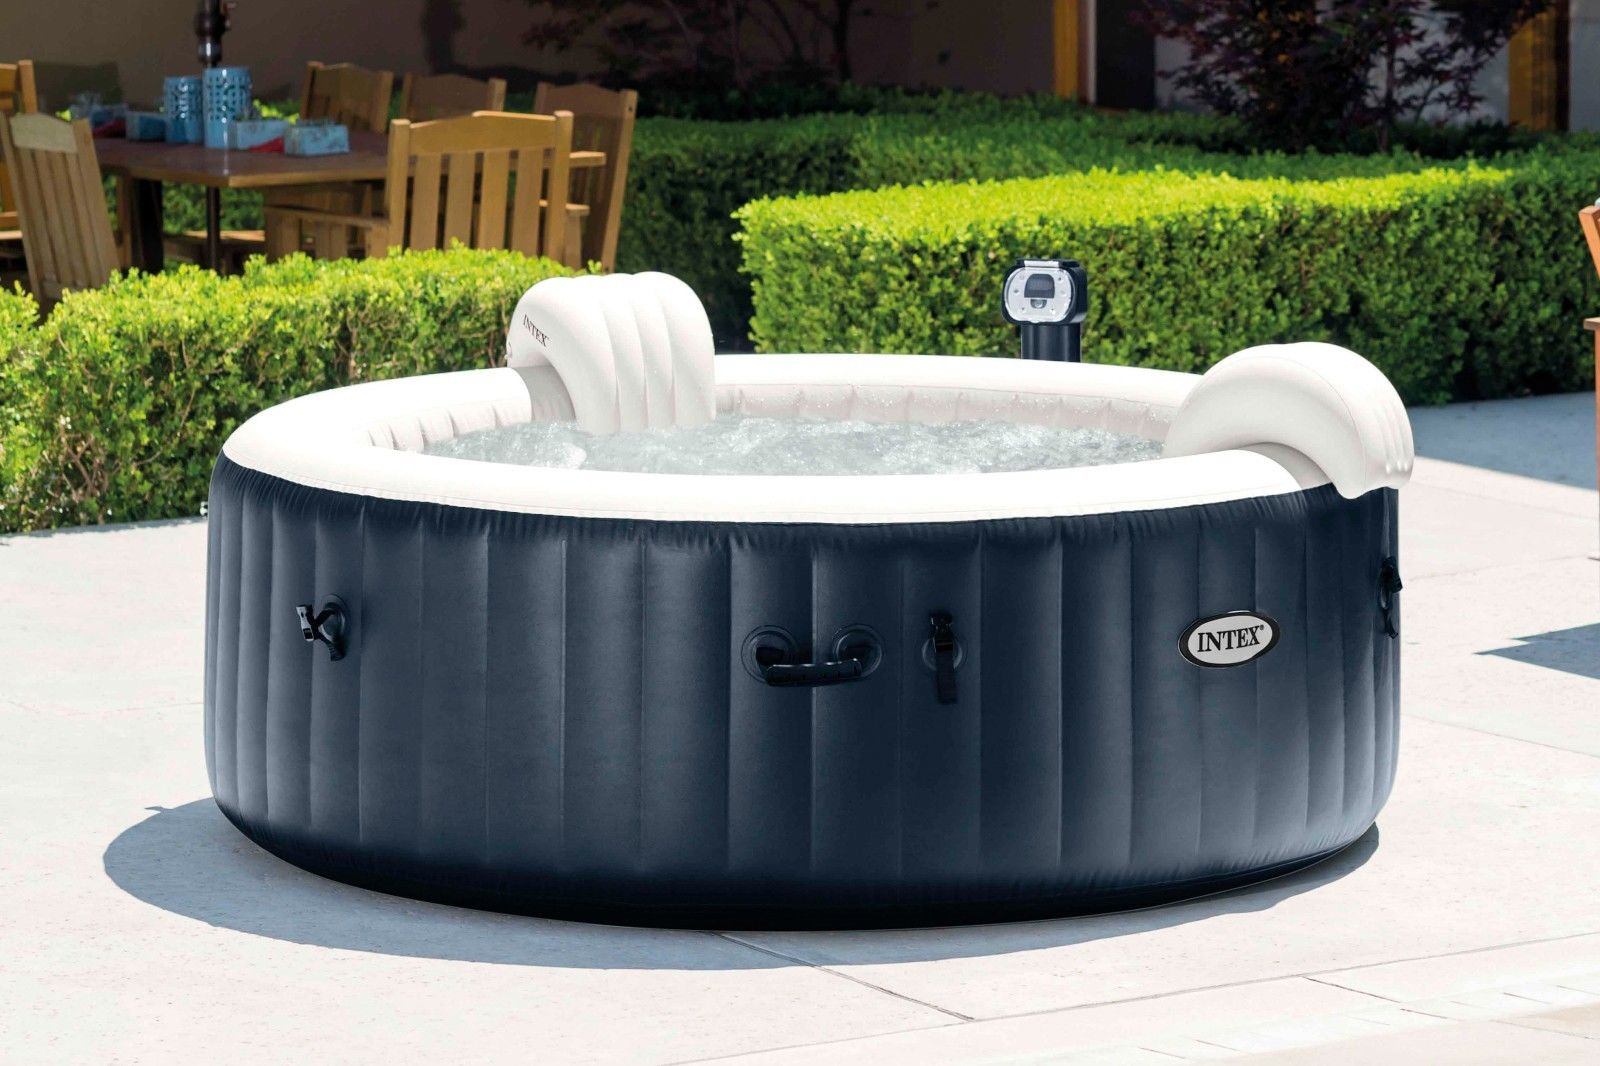 Spa Exterieur Temperature Intex Pure Spa 4 Person Inflatable Portable Heated Bubble